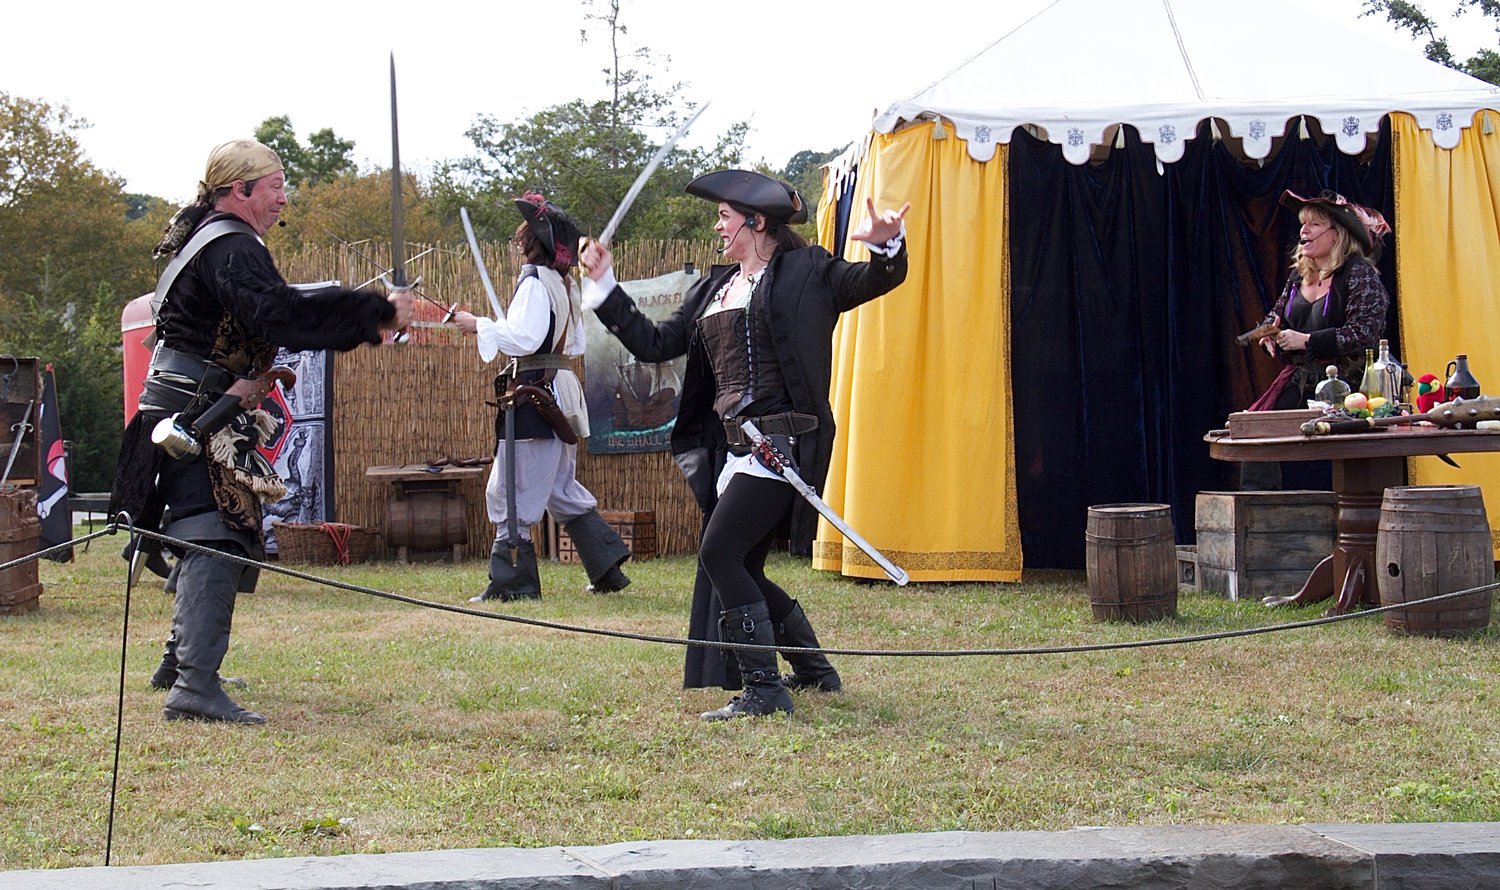 Pirates entertained crowds with a lively sword fight.